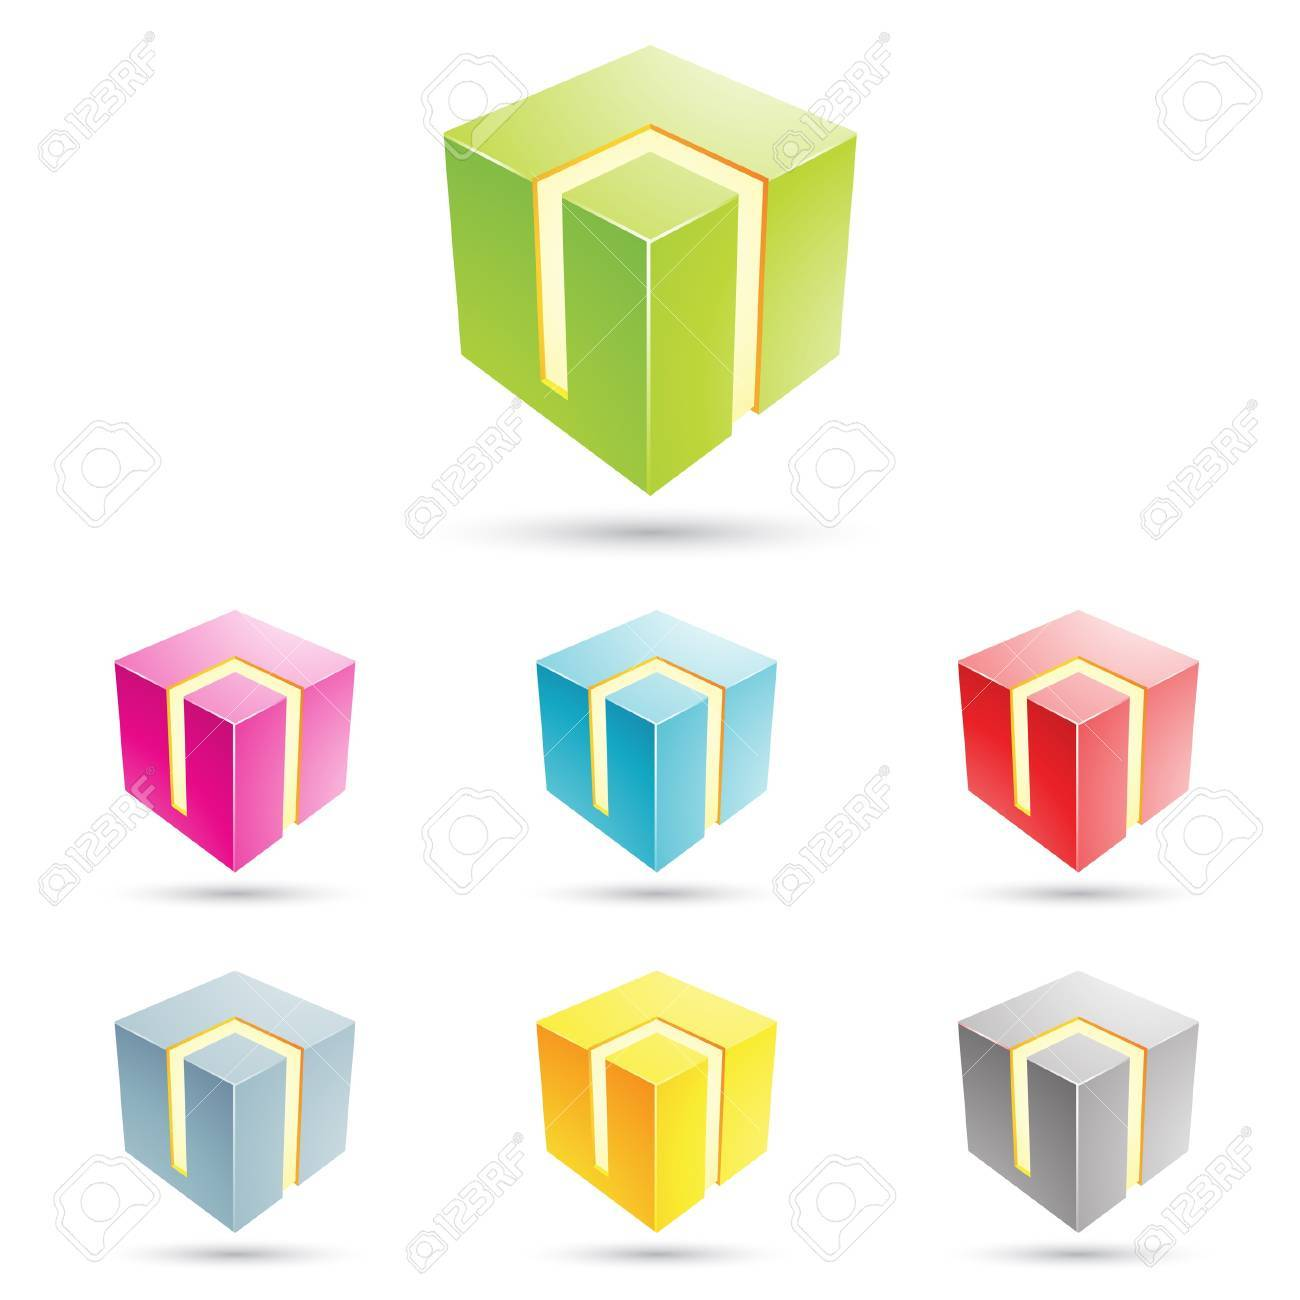 eps vector illustration of colorful cubical icons - 22029196